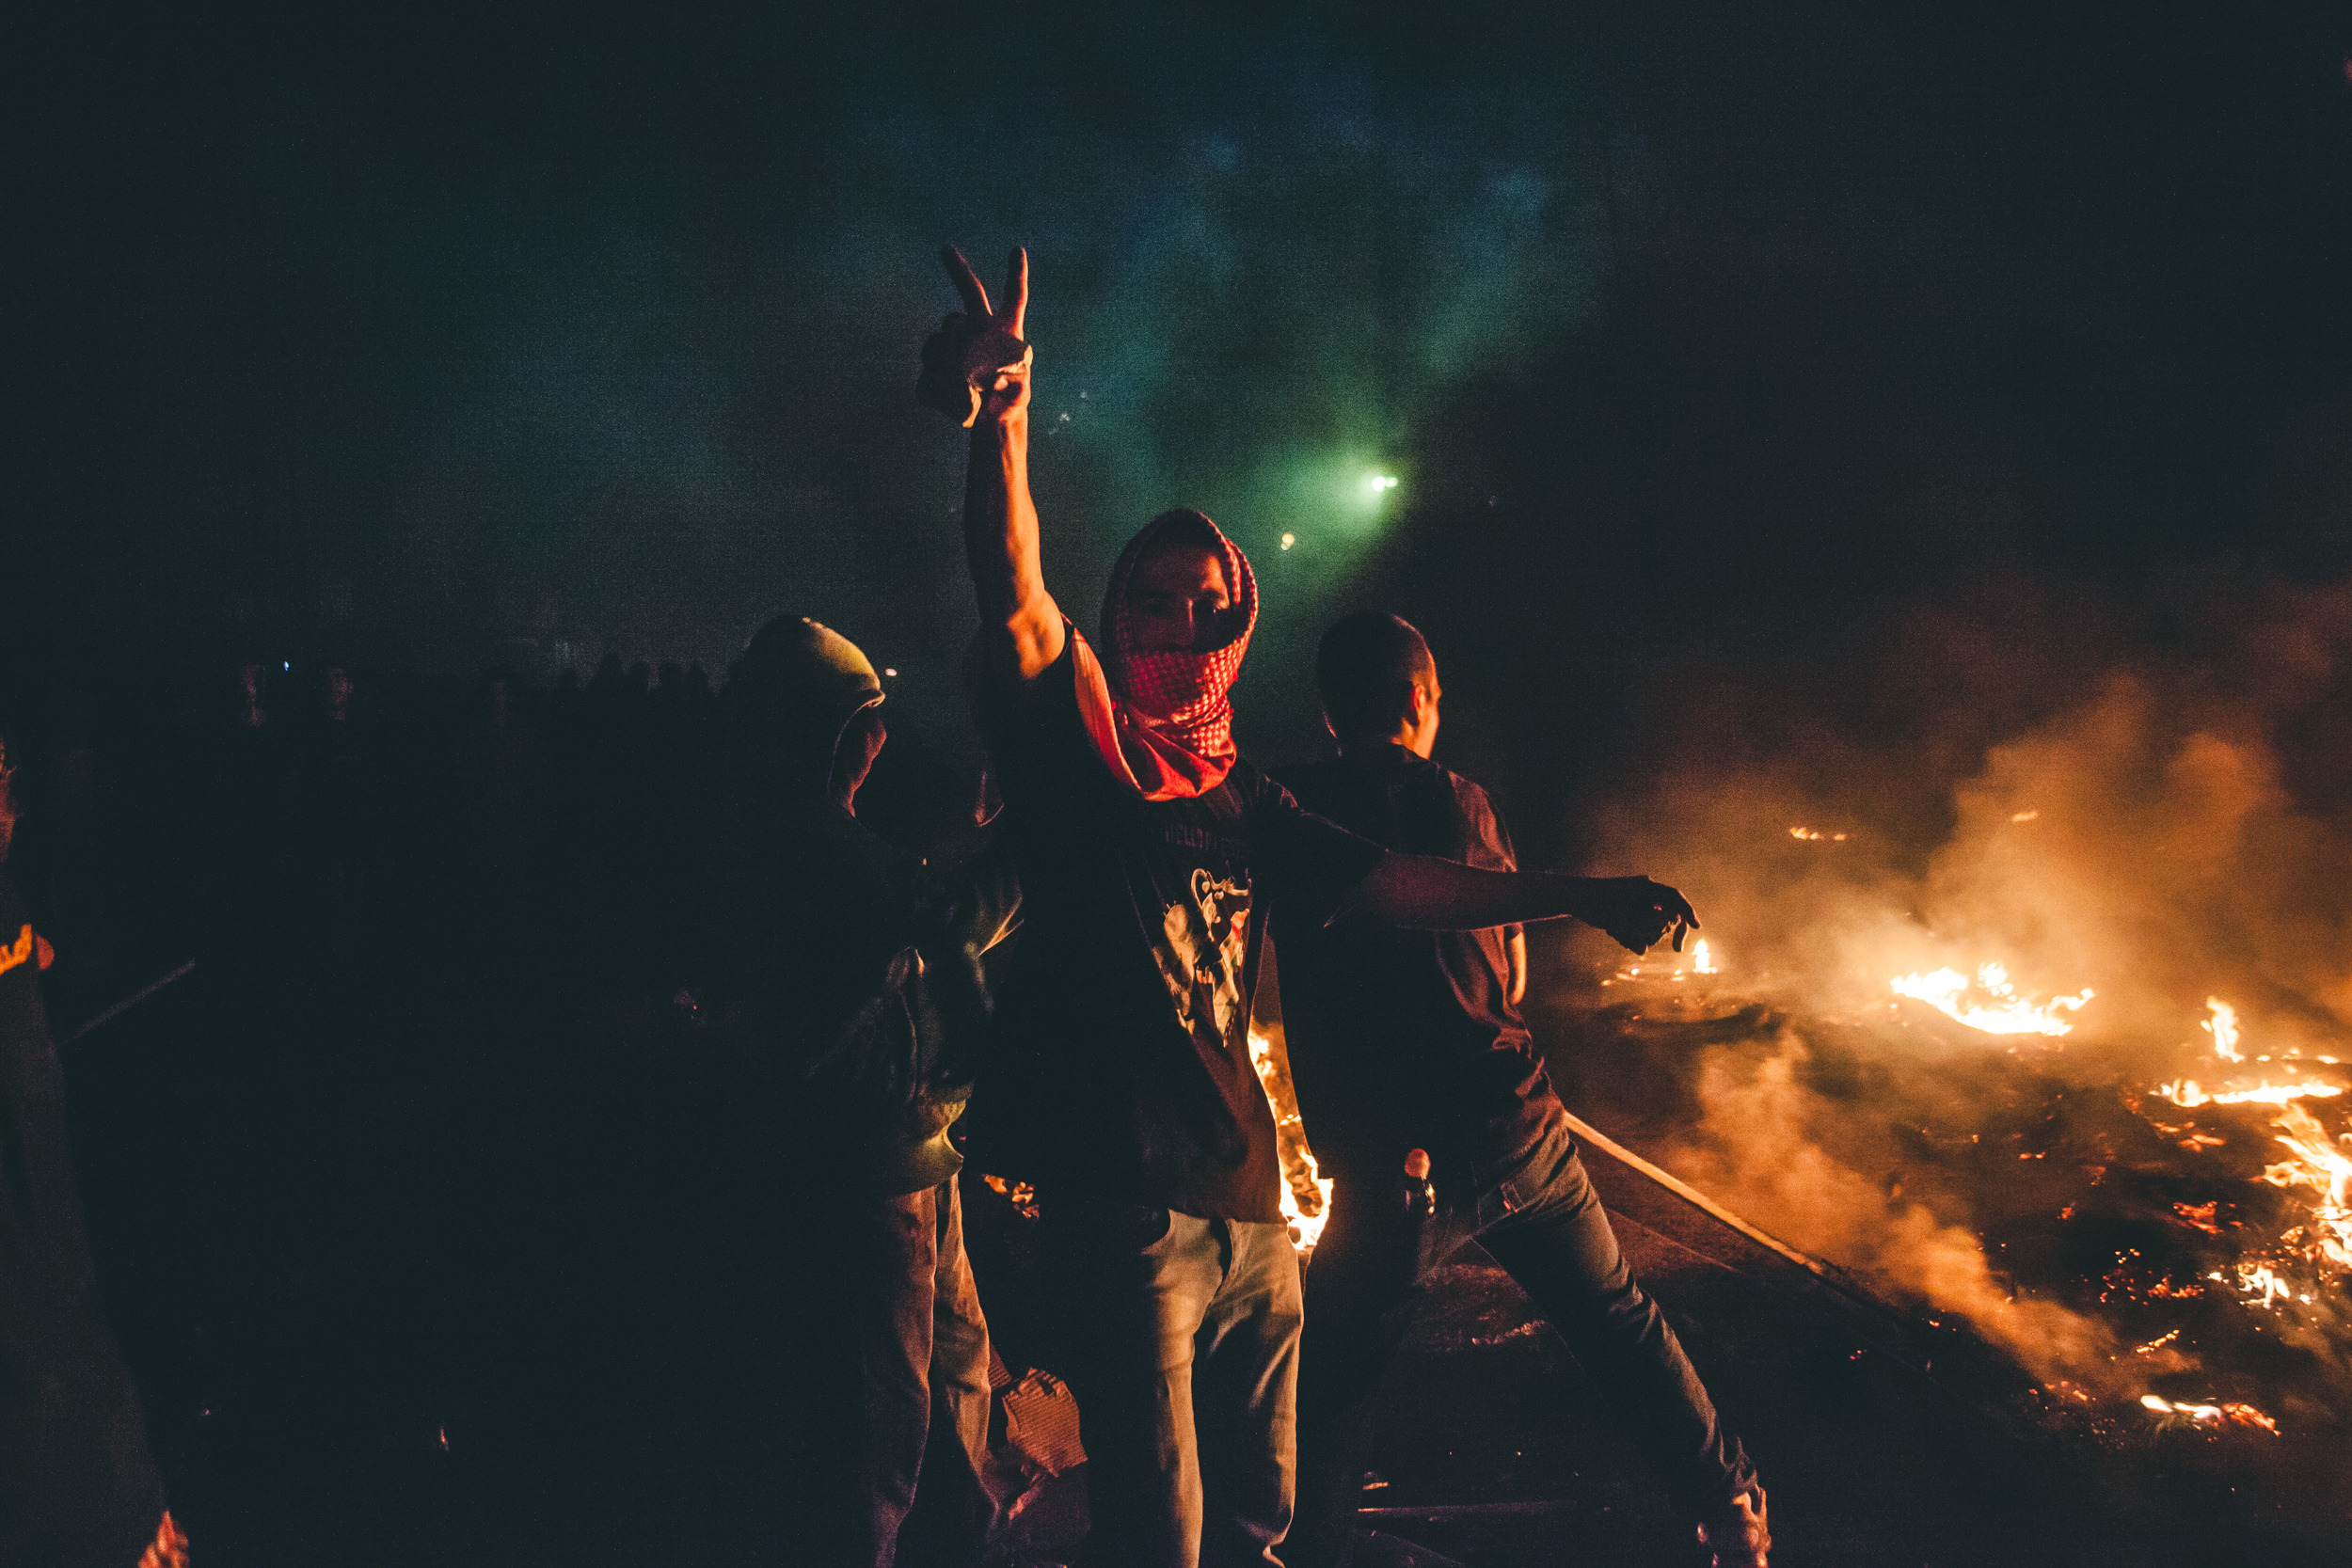 A keffiyeh clad demonstrator holds up a peace sign while clutching a rockat Qalandia checkpointas the fire and protest roars behind himduring thelargest protest of the summer in the West Bank- the48Thousand March.23rd July, 2014.